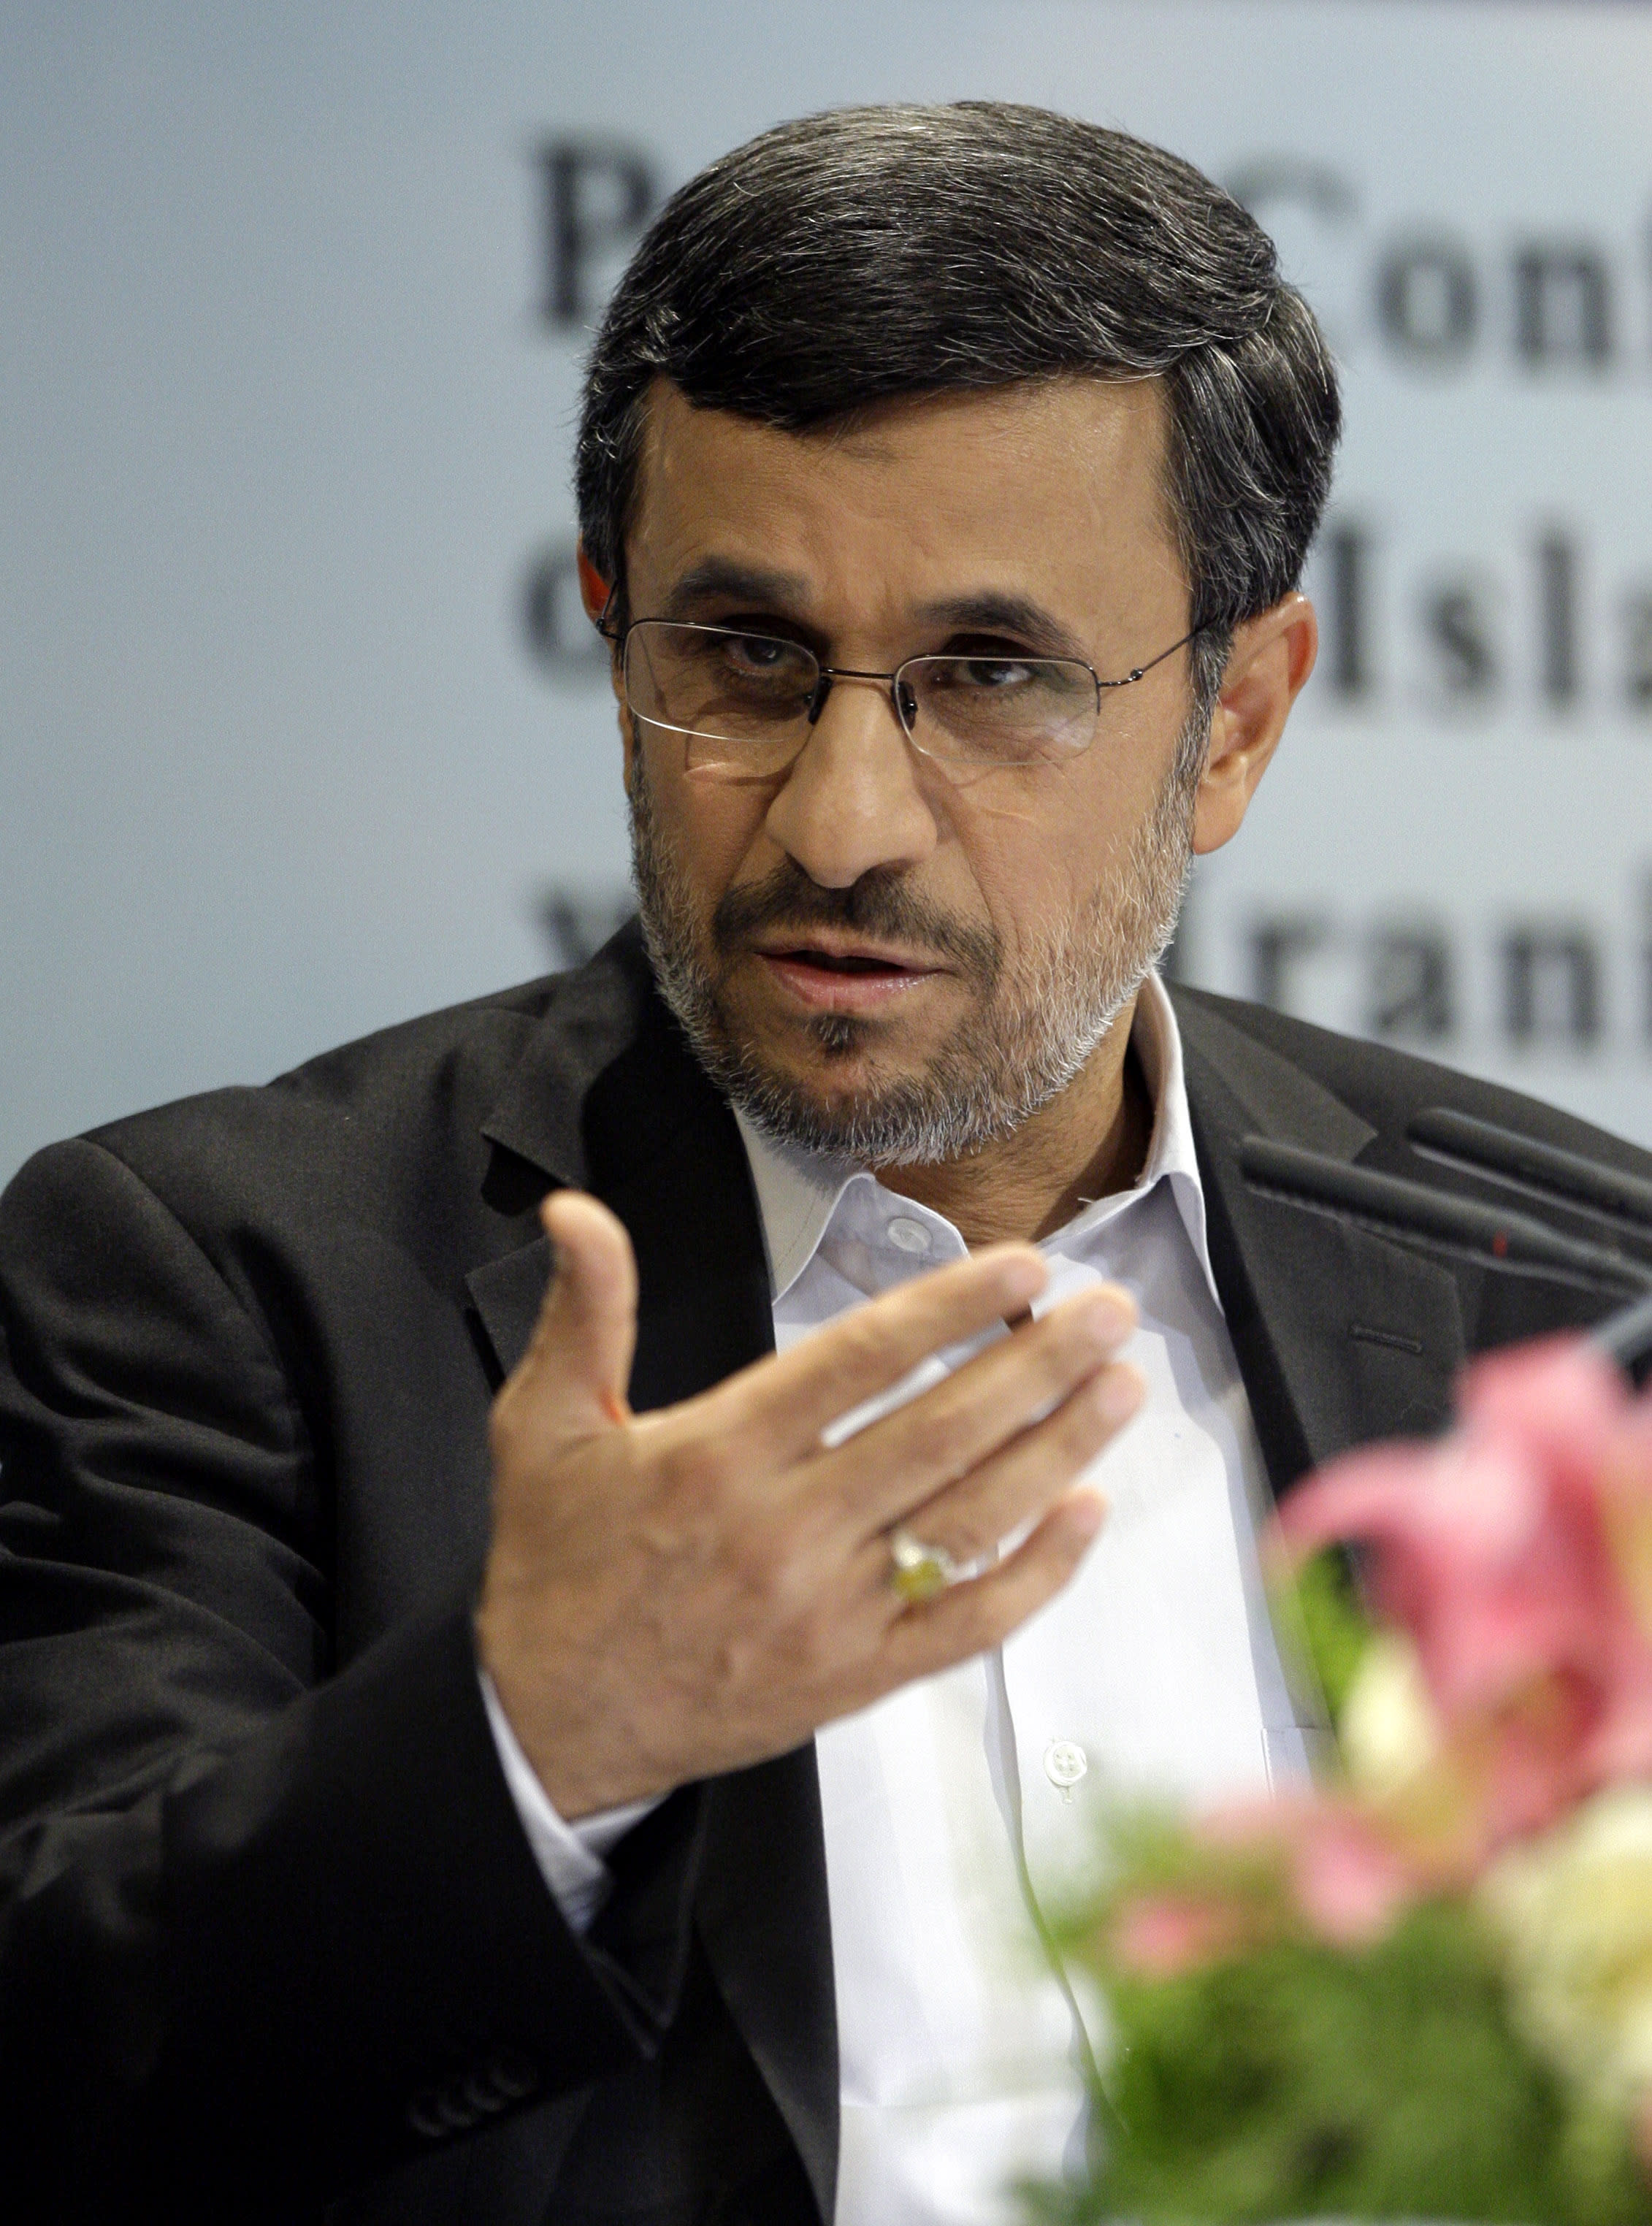 """Iranian President Mahmoud Ahmadinejad speaks at a press conference in Tehran, Iran, Tuesday, Oct. 2, 2012. Ahmadinejad blamed the steep drop in Iran's currency Tuesday to """"psychological pressures"""" linked to Western sanctions over Tehran's nuclear program. The remarks were part of his attempt to deflect criticism from political rivals that his government's policies also have contributed to the nosedive of the Iranian rial, which has lost more than half its value against the U.S. dollar this year and has sharply pushed up costs for many imported goods. (AP Photo/Vahid Salemi)"""